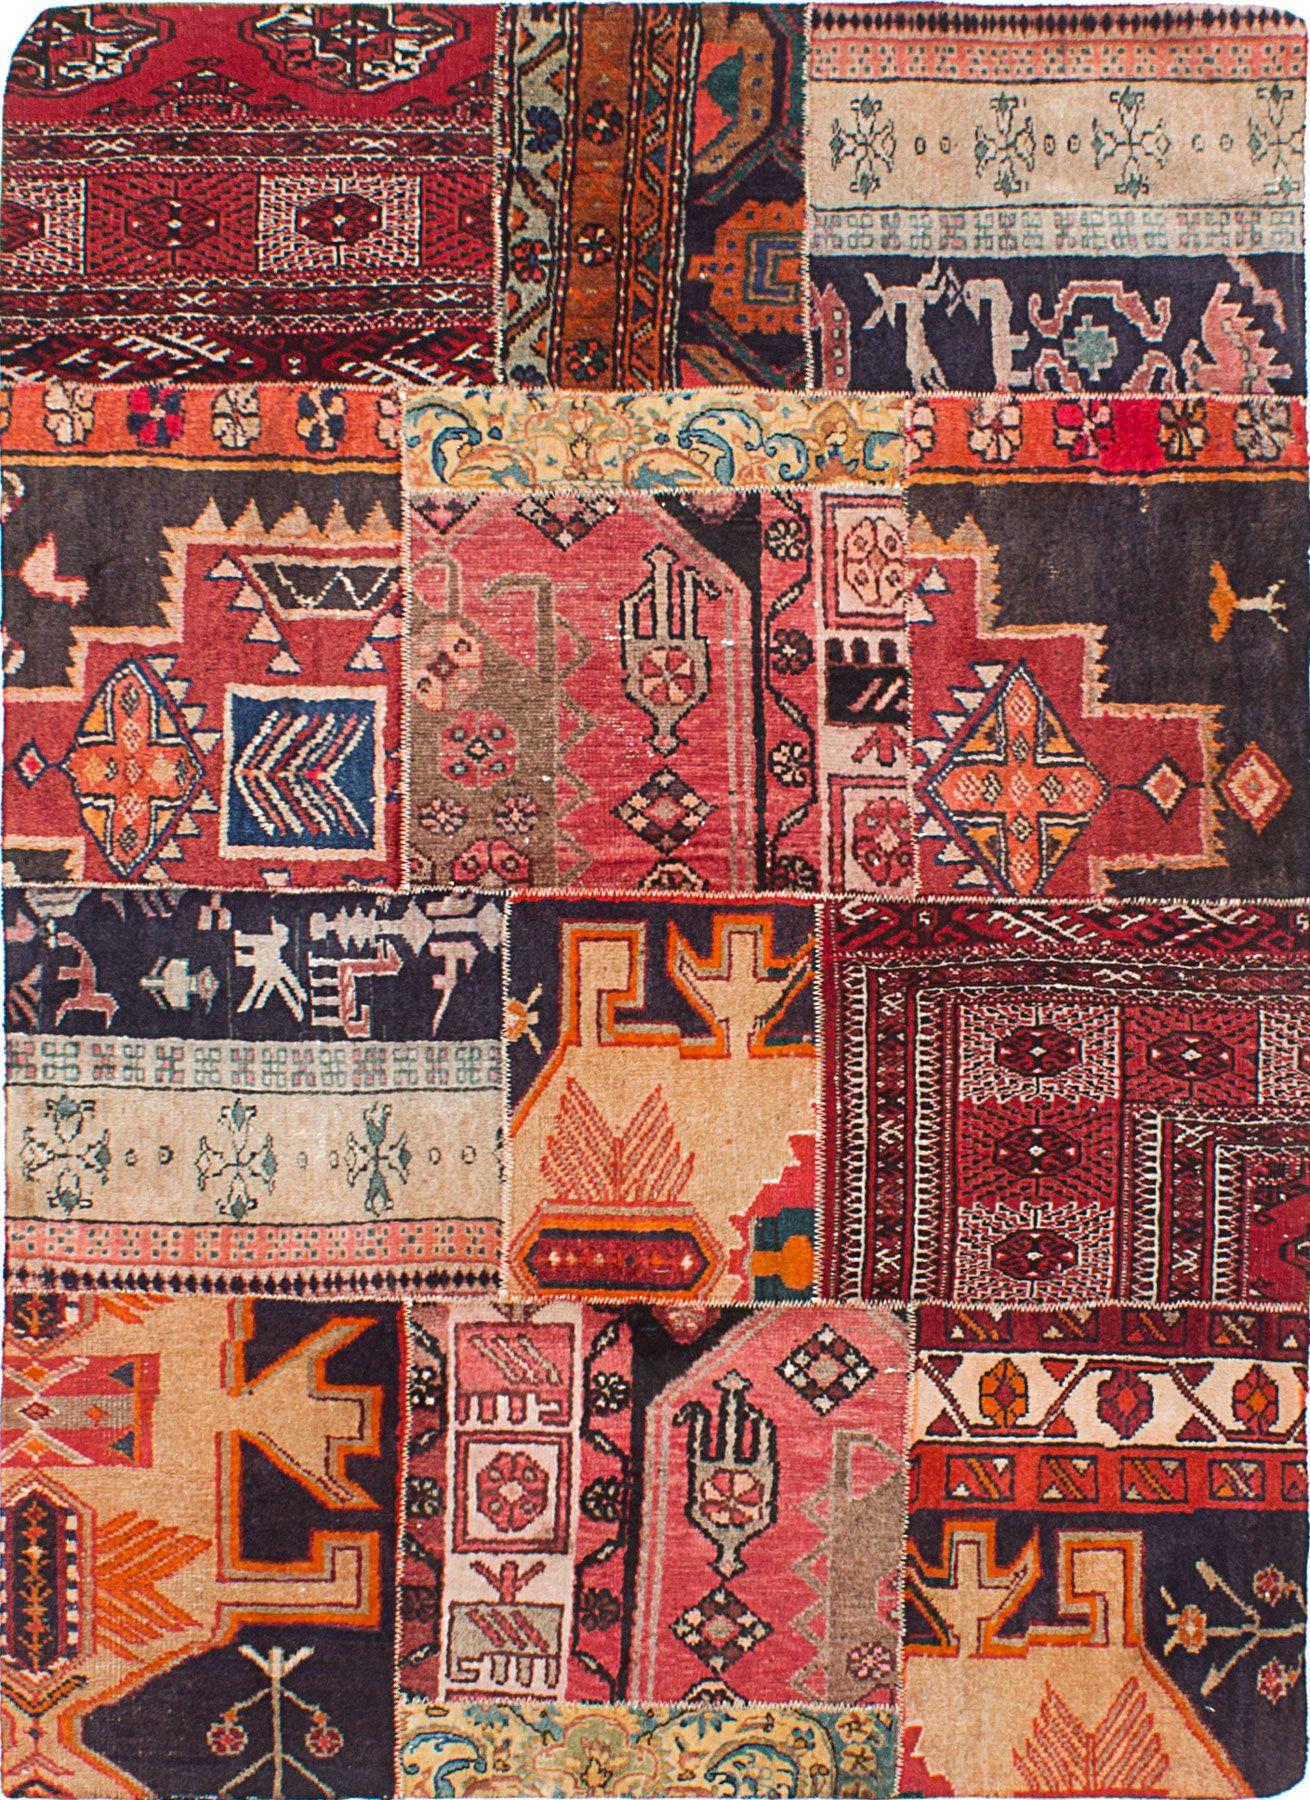 Hand Knotted Persian Rugs Overdyed Or Teawashed Distressed And Antiqued Vintage Persian Rug Rugs Persian Rug